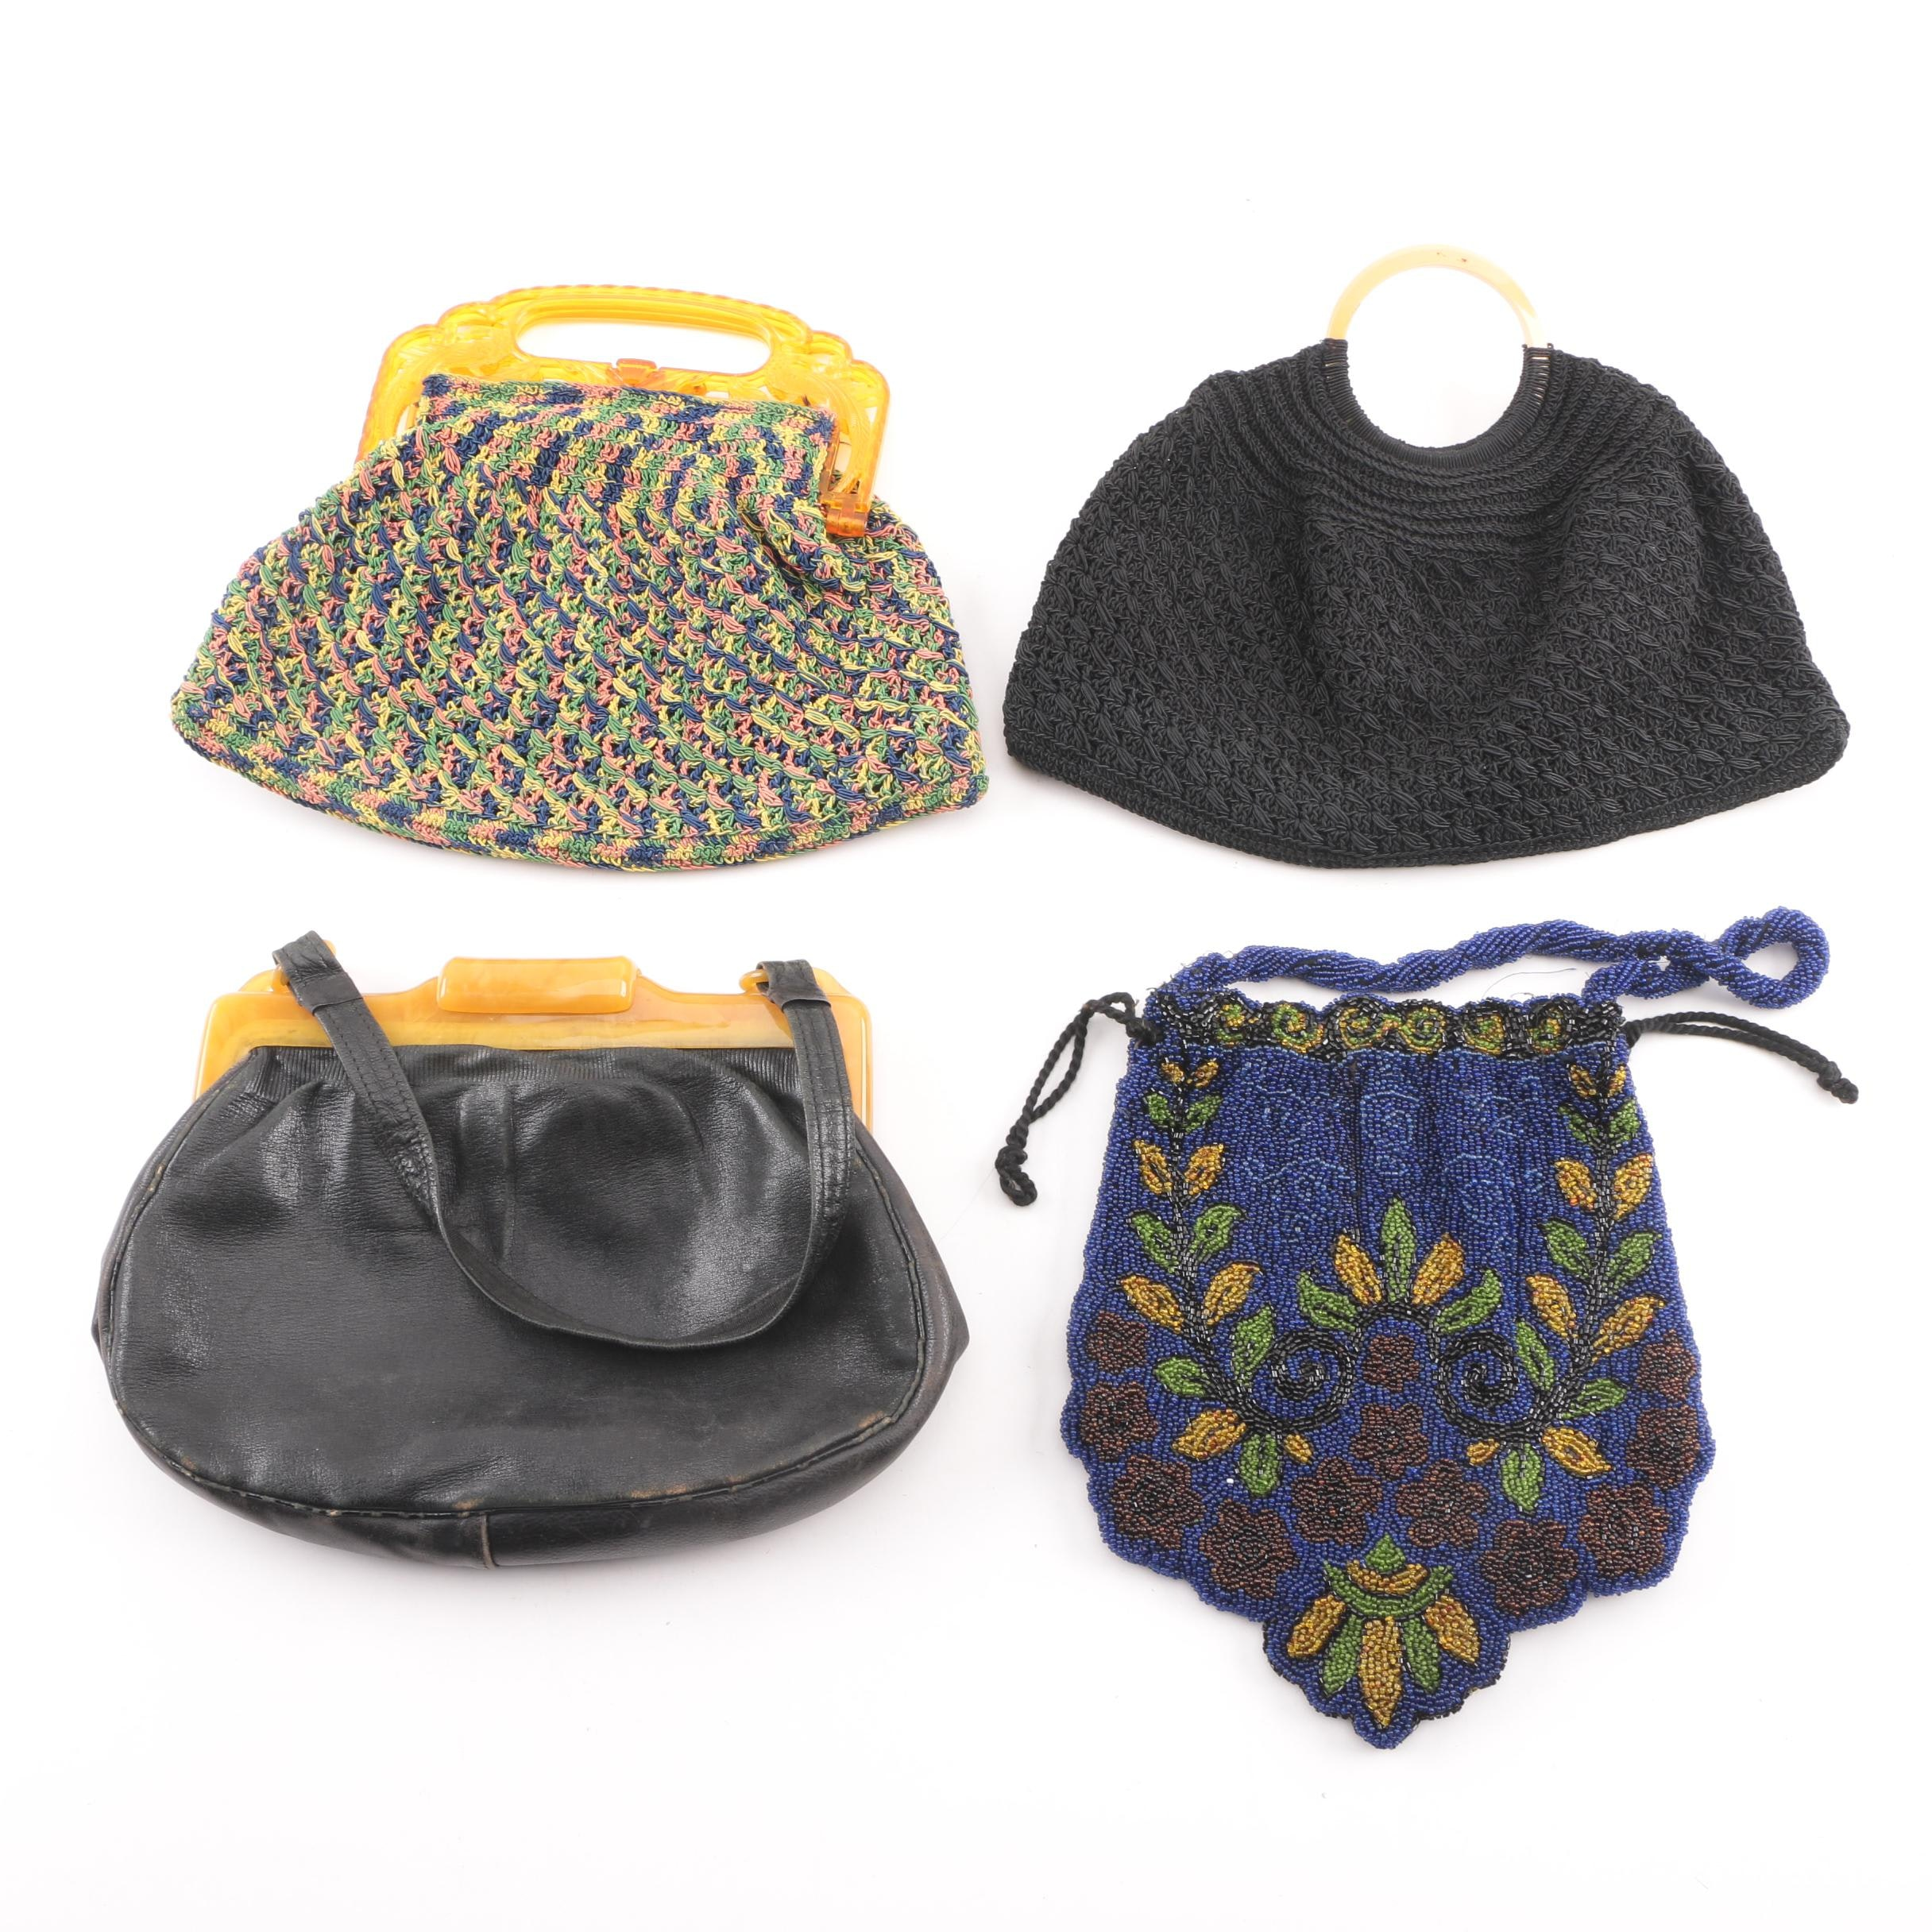 Vintage Handbags Including Beaded and Crochet